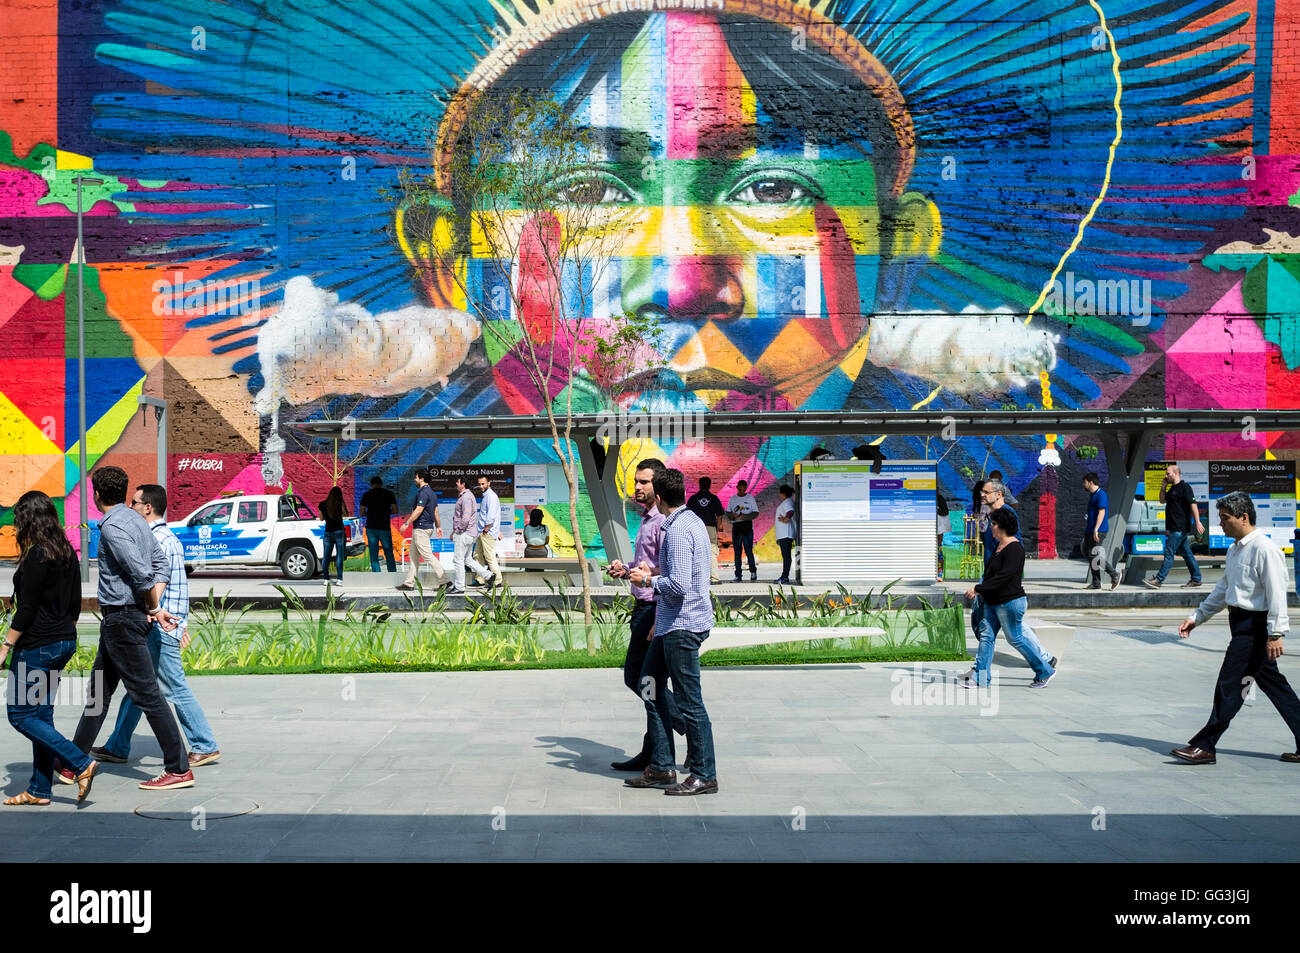 Eduardo Kobra s Mural named Native people from the 5 continents ( Povos nativos dos 5 continentes ) at Boulevard - Stock Image